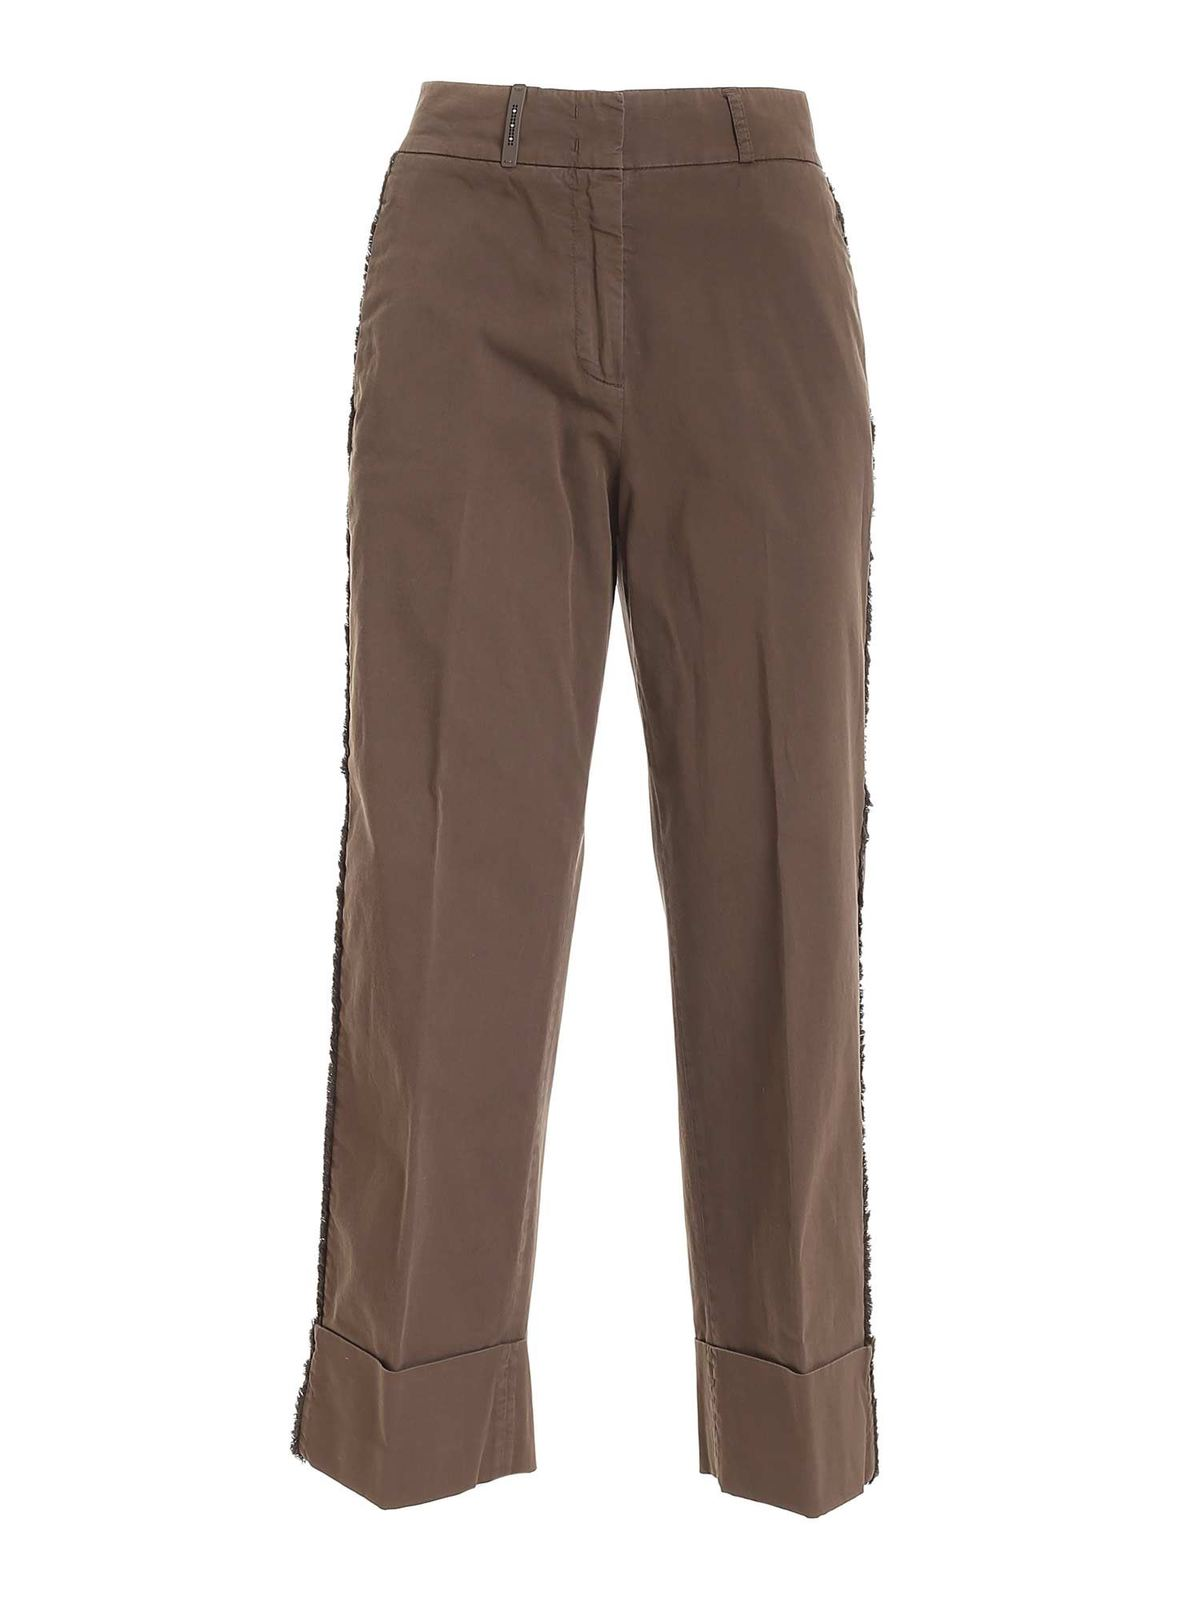 Peserico FRINGED DETAIL PANTS IN BROWN